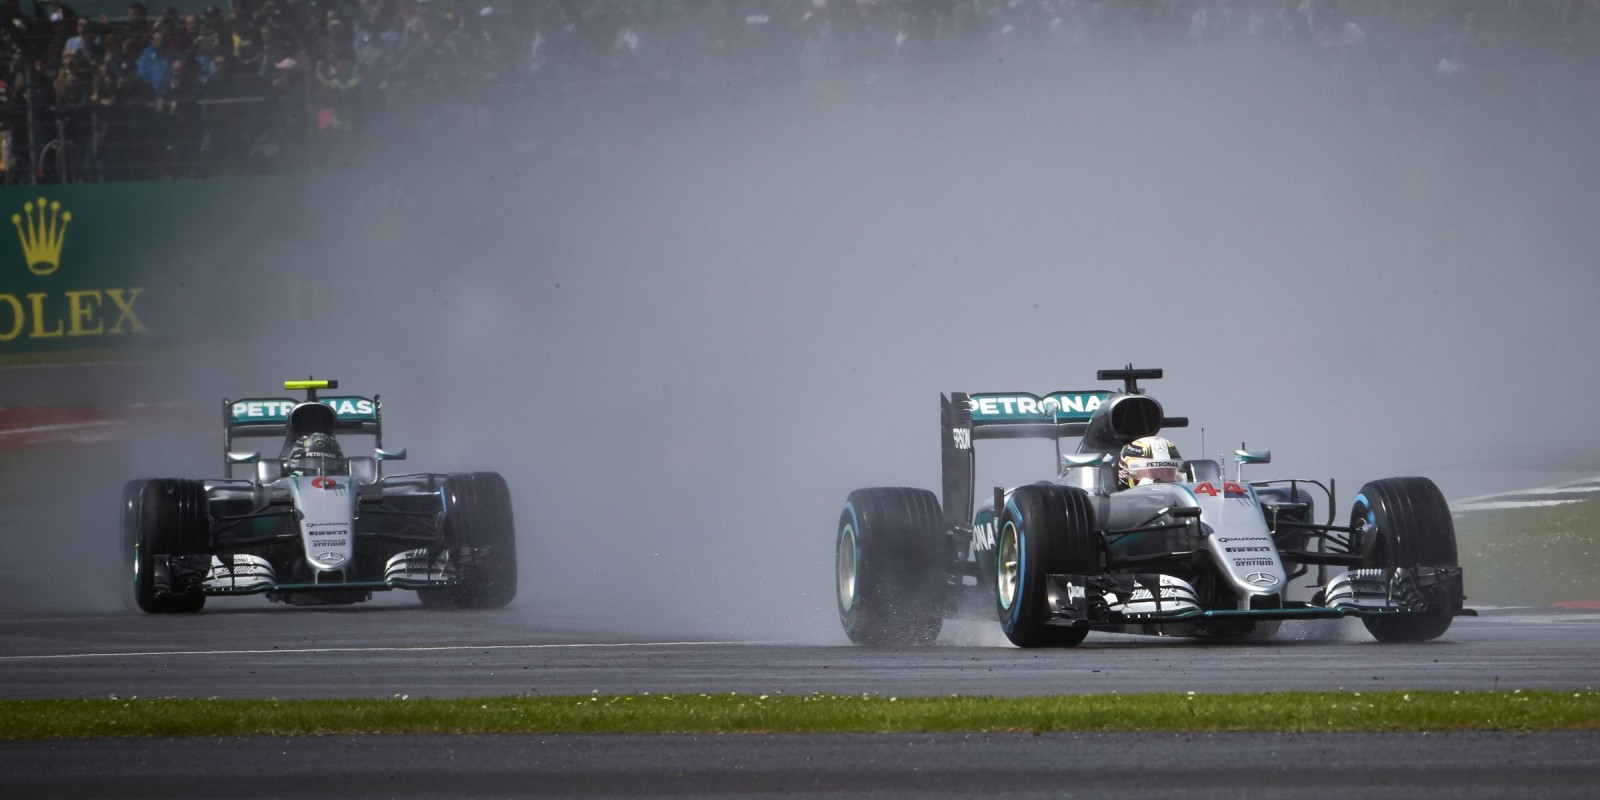 Sunday images from the 2016 British Grand Prix